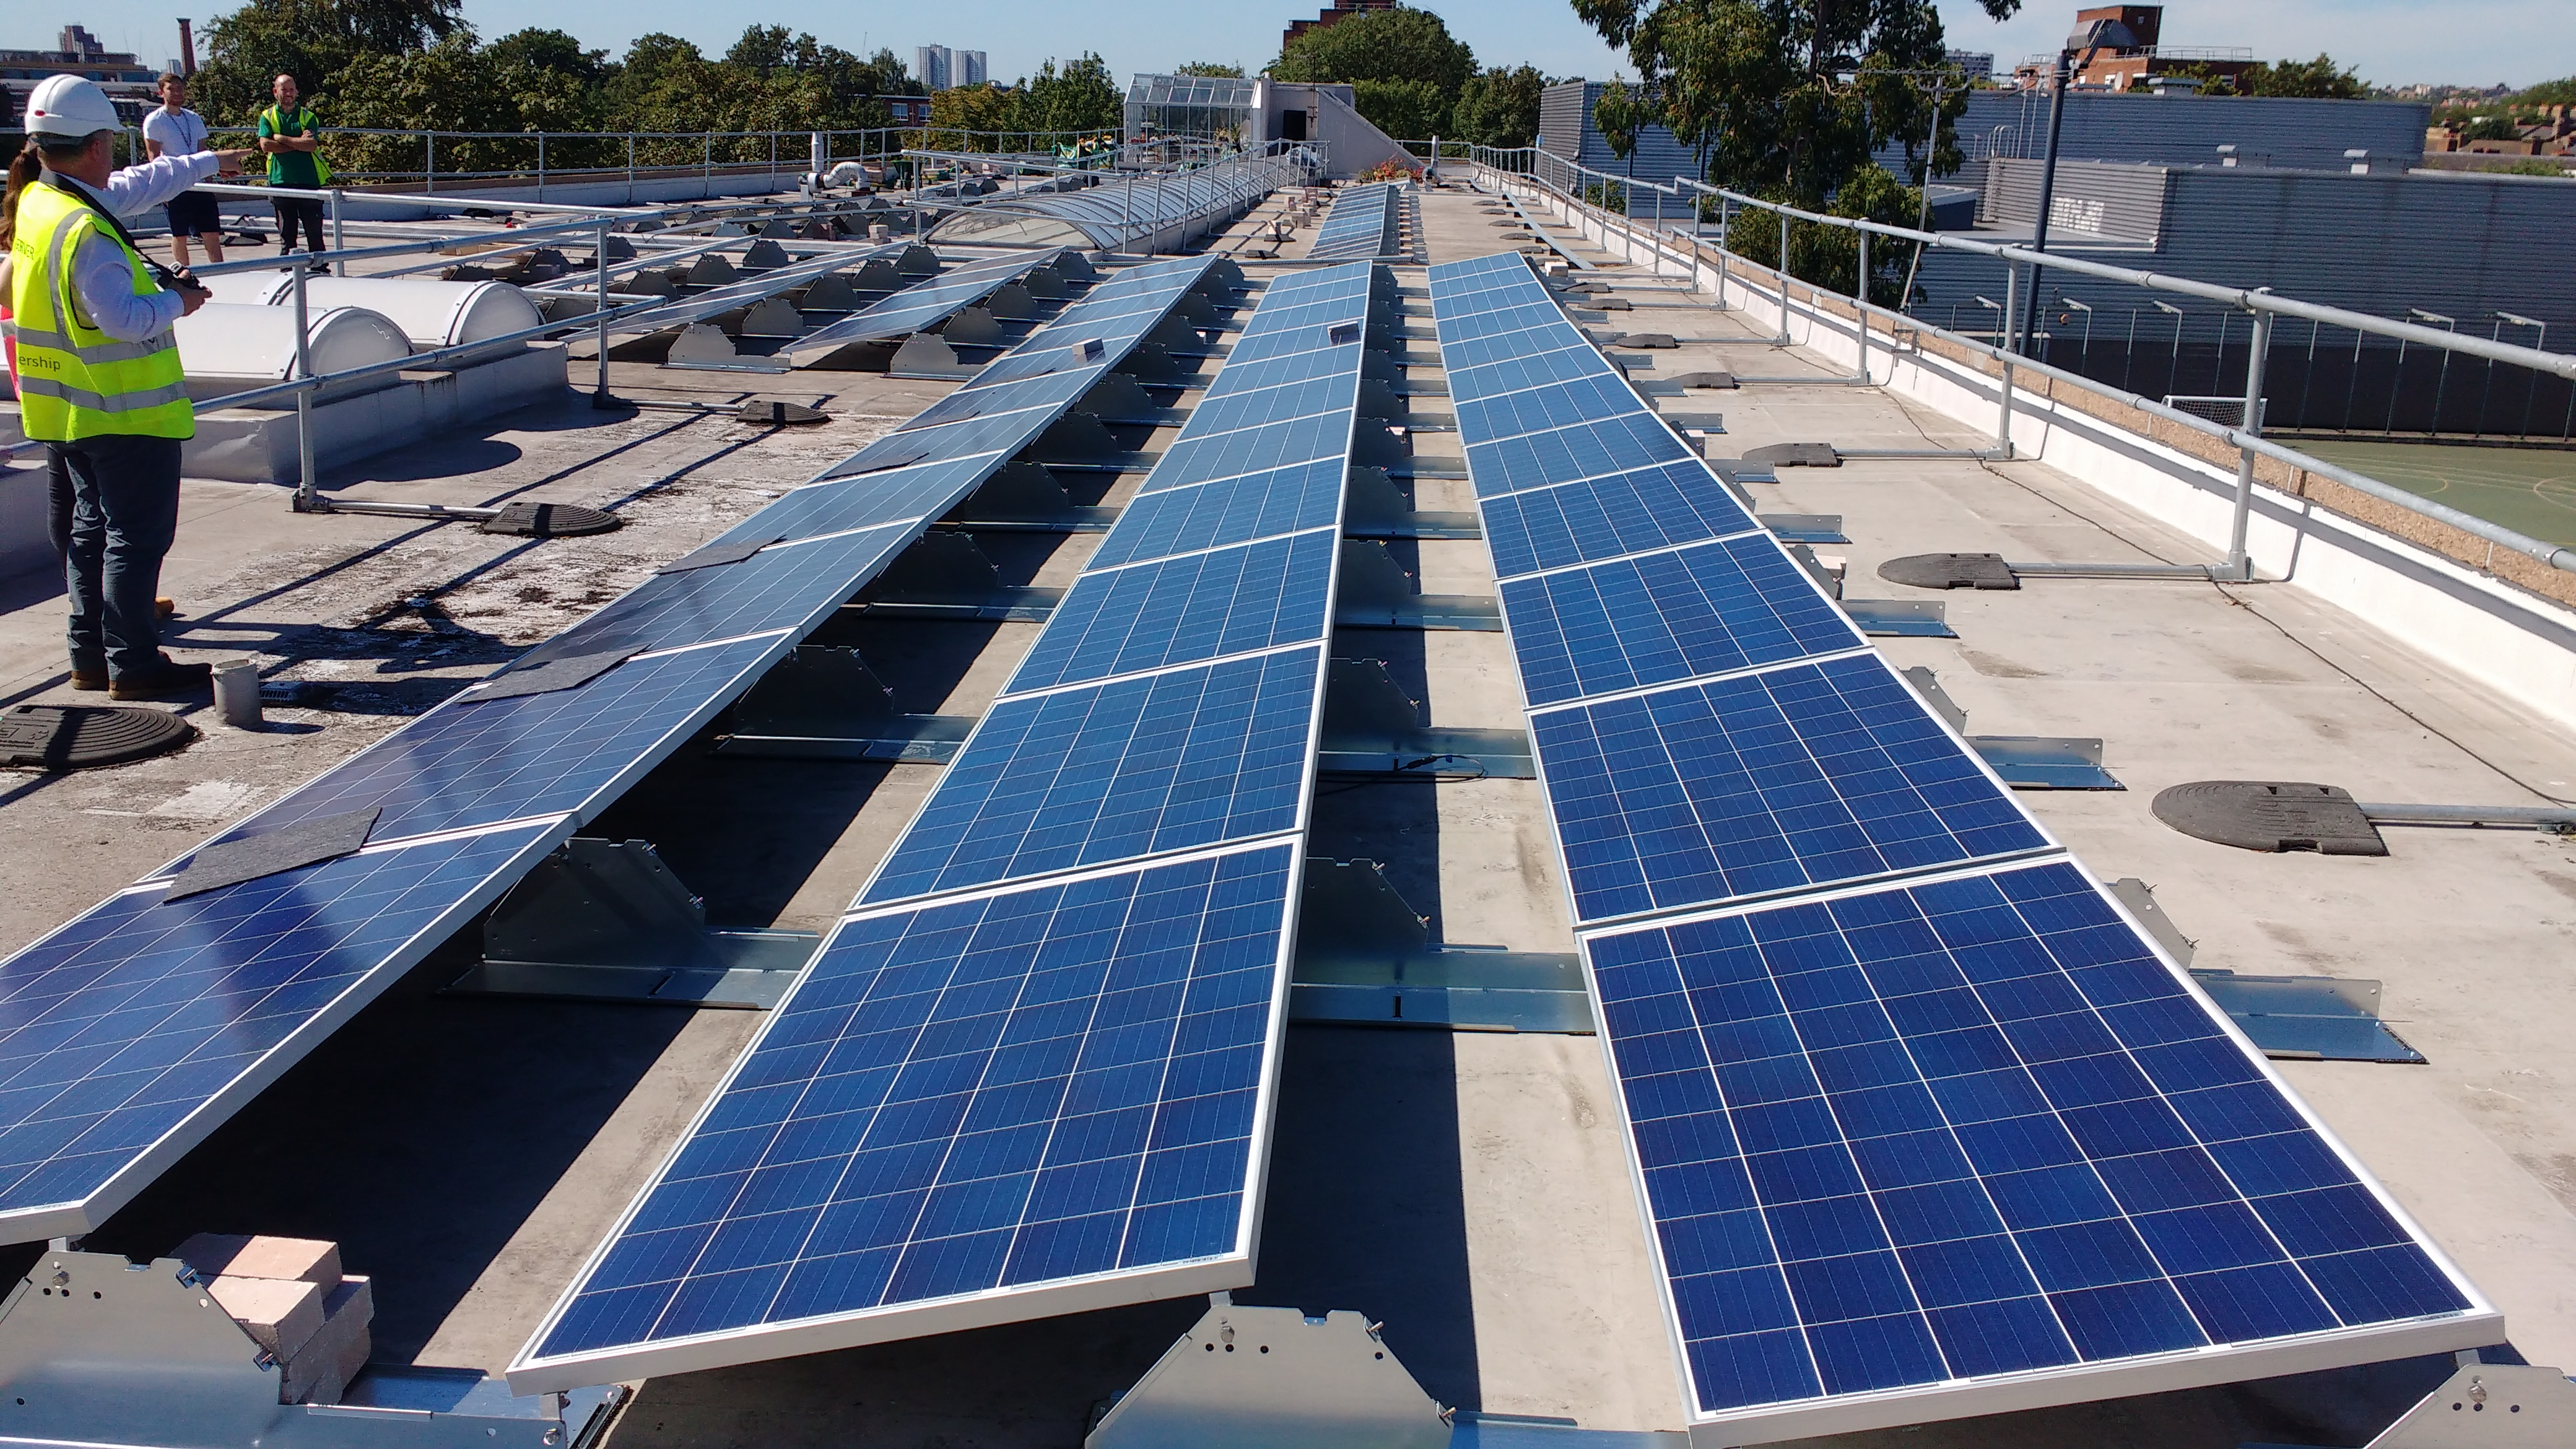 Solar Pv Installations And Planning Requirements For Non